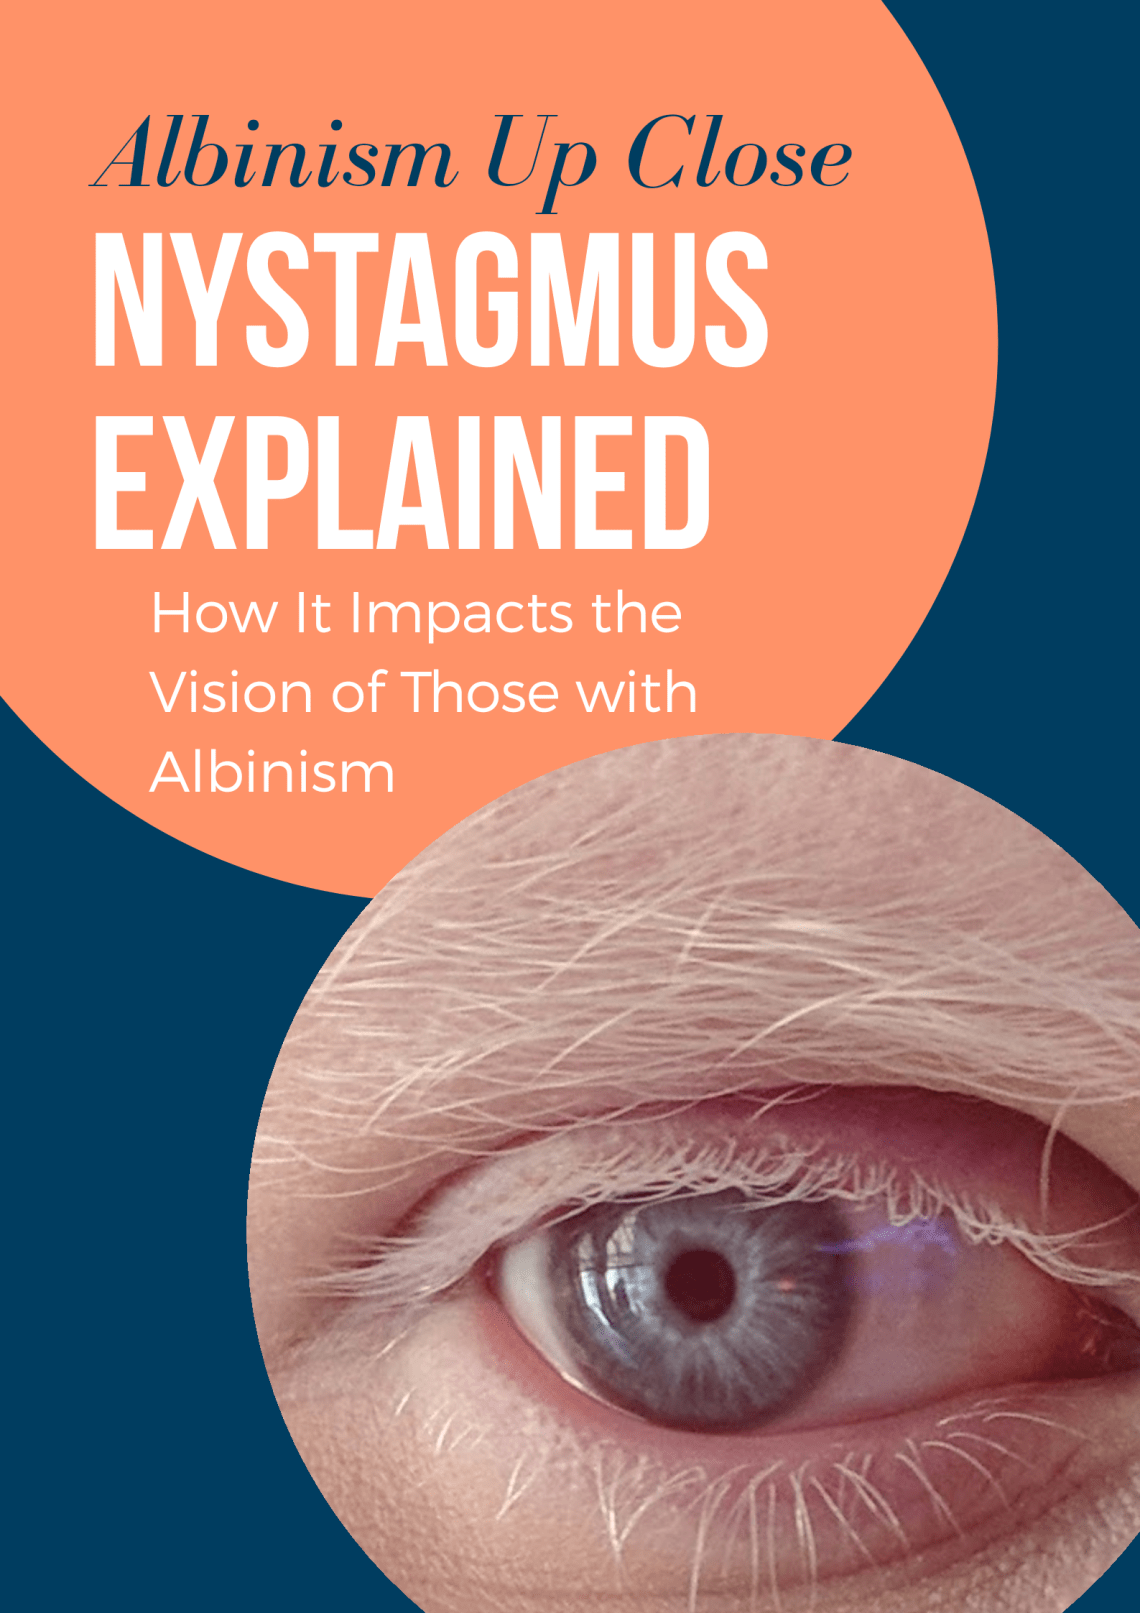 Nystagmus explained featured image